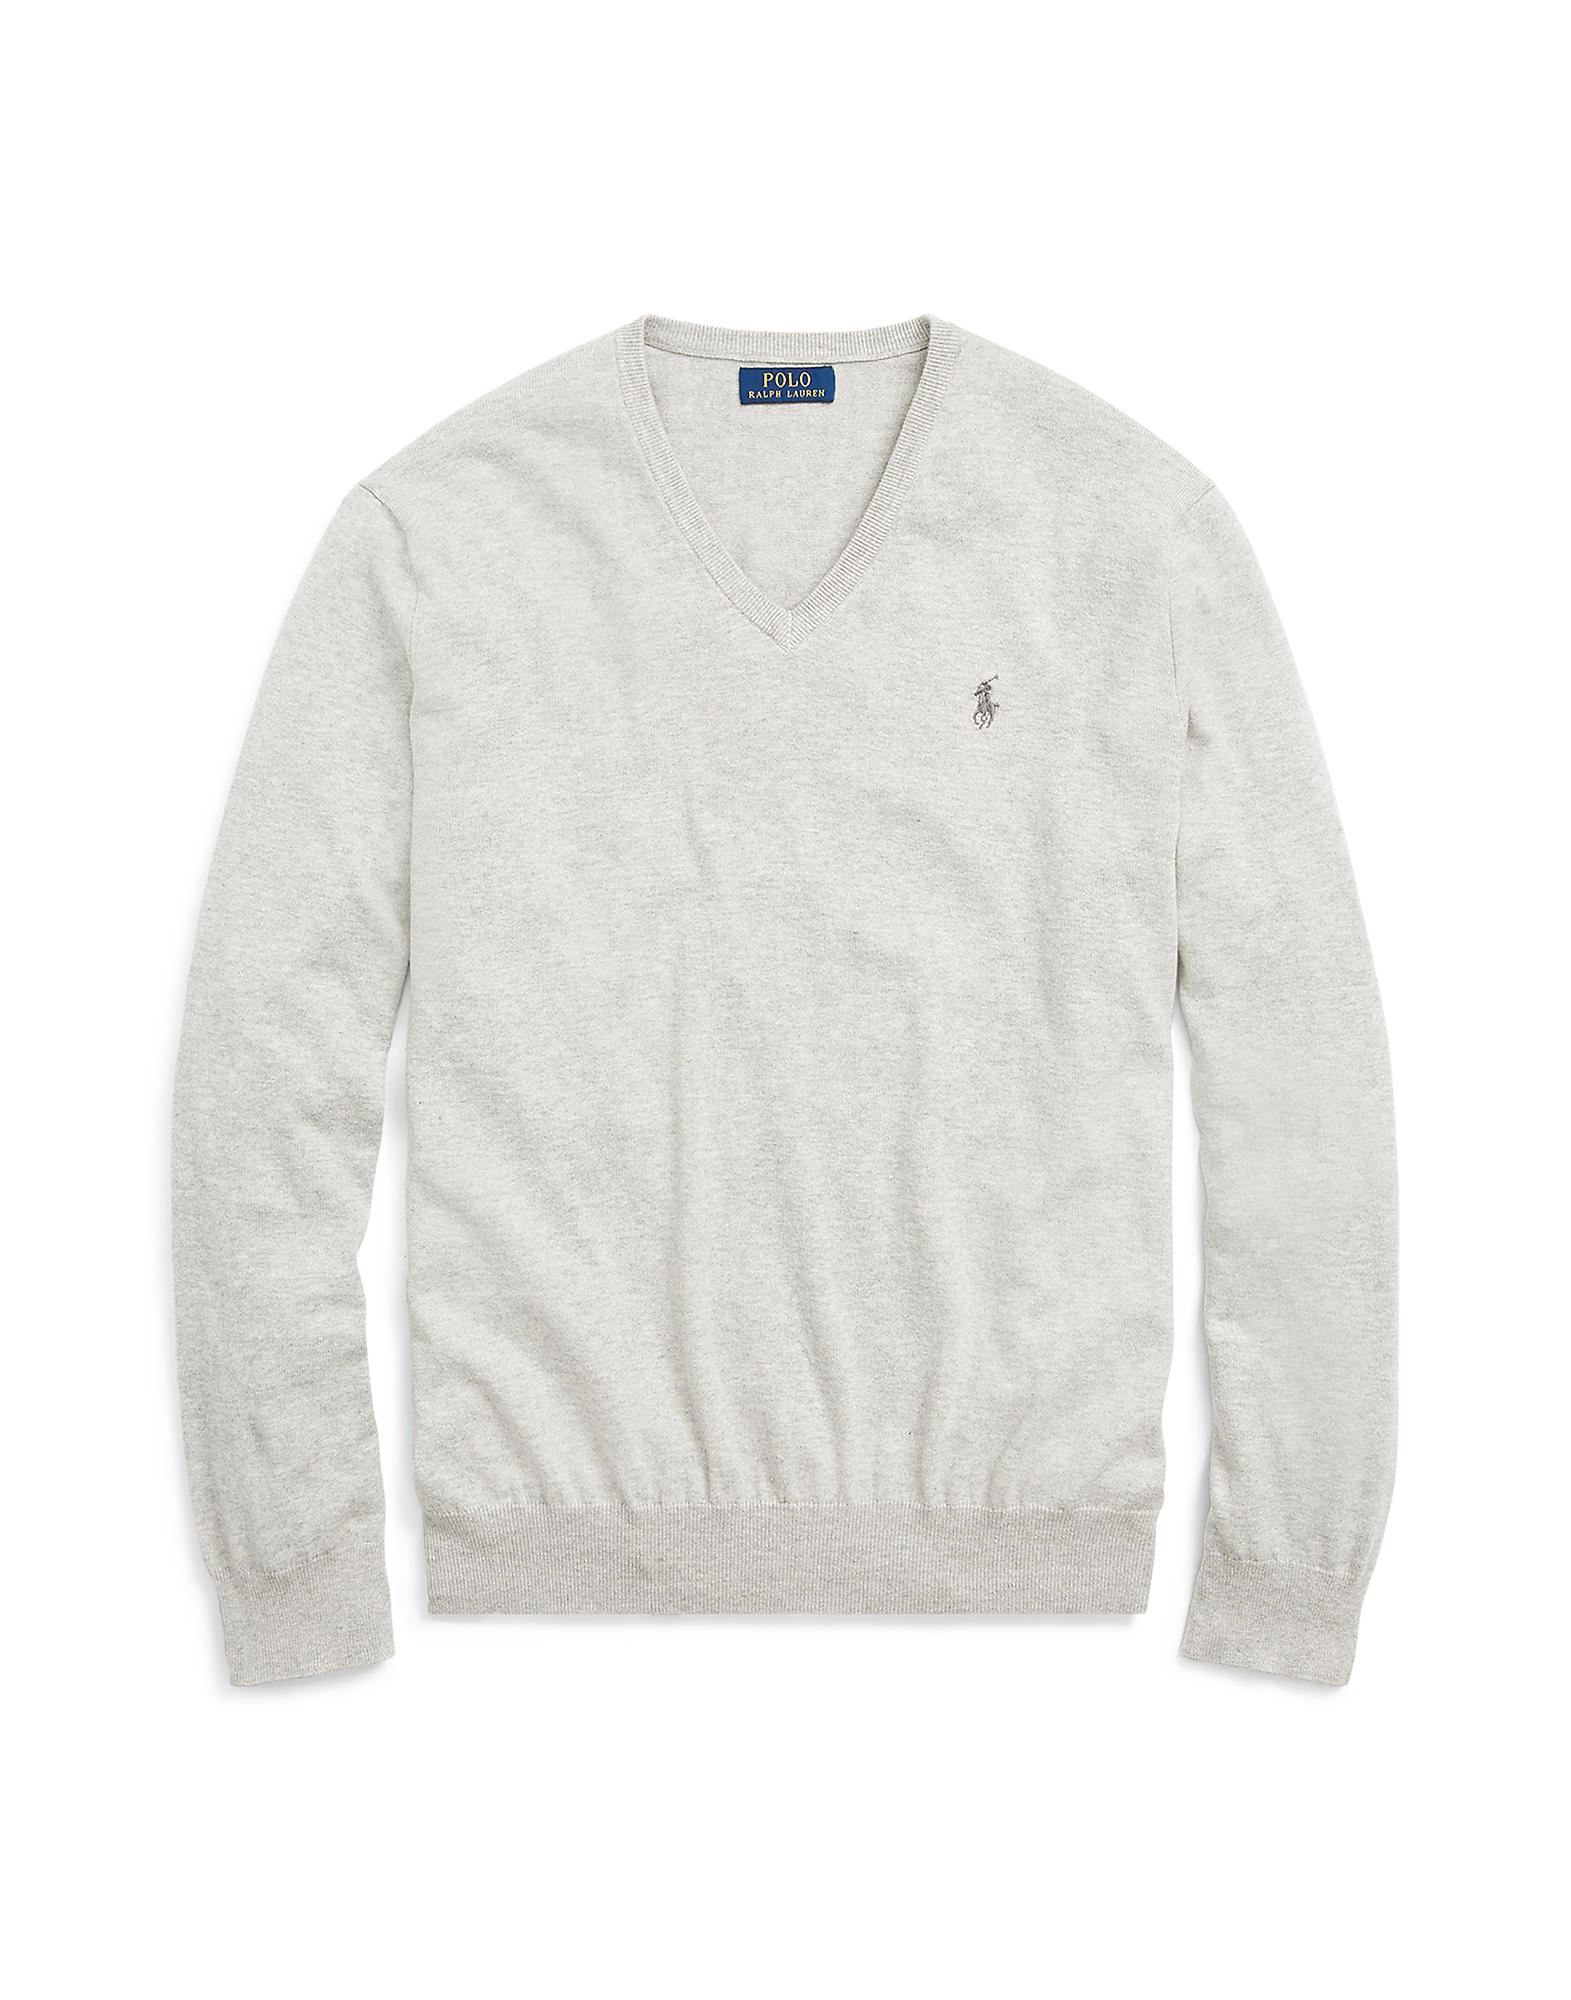 Pullover Polo Ralph Lauren Pima Cotton Sweater - Uomo - Acquista online su